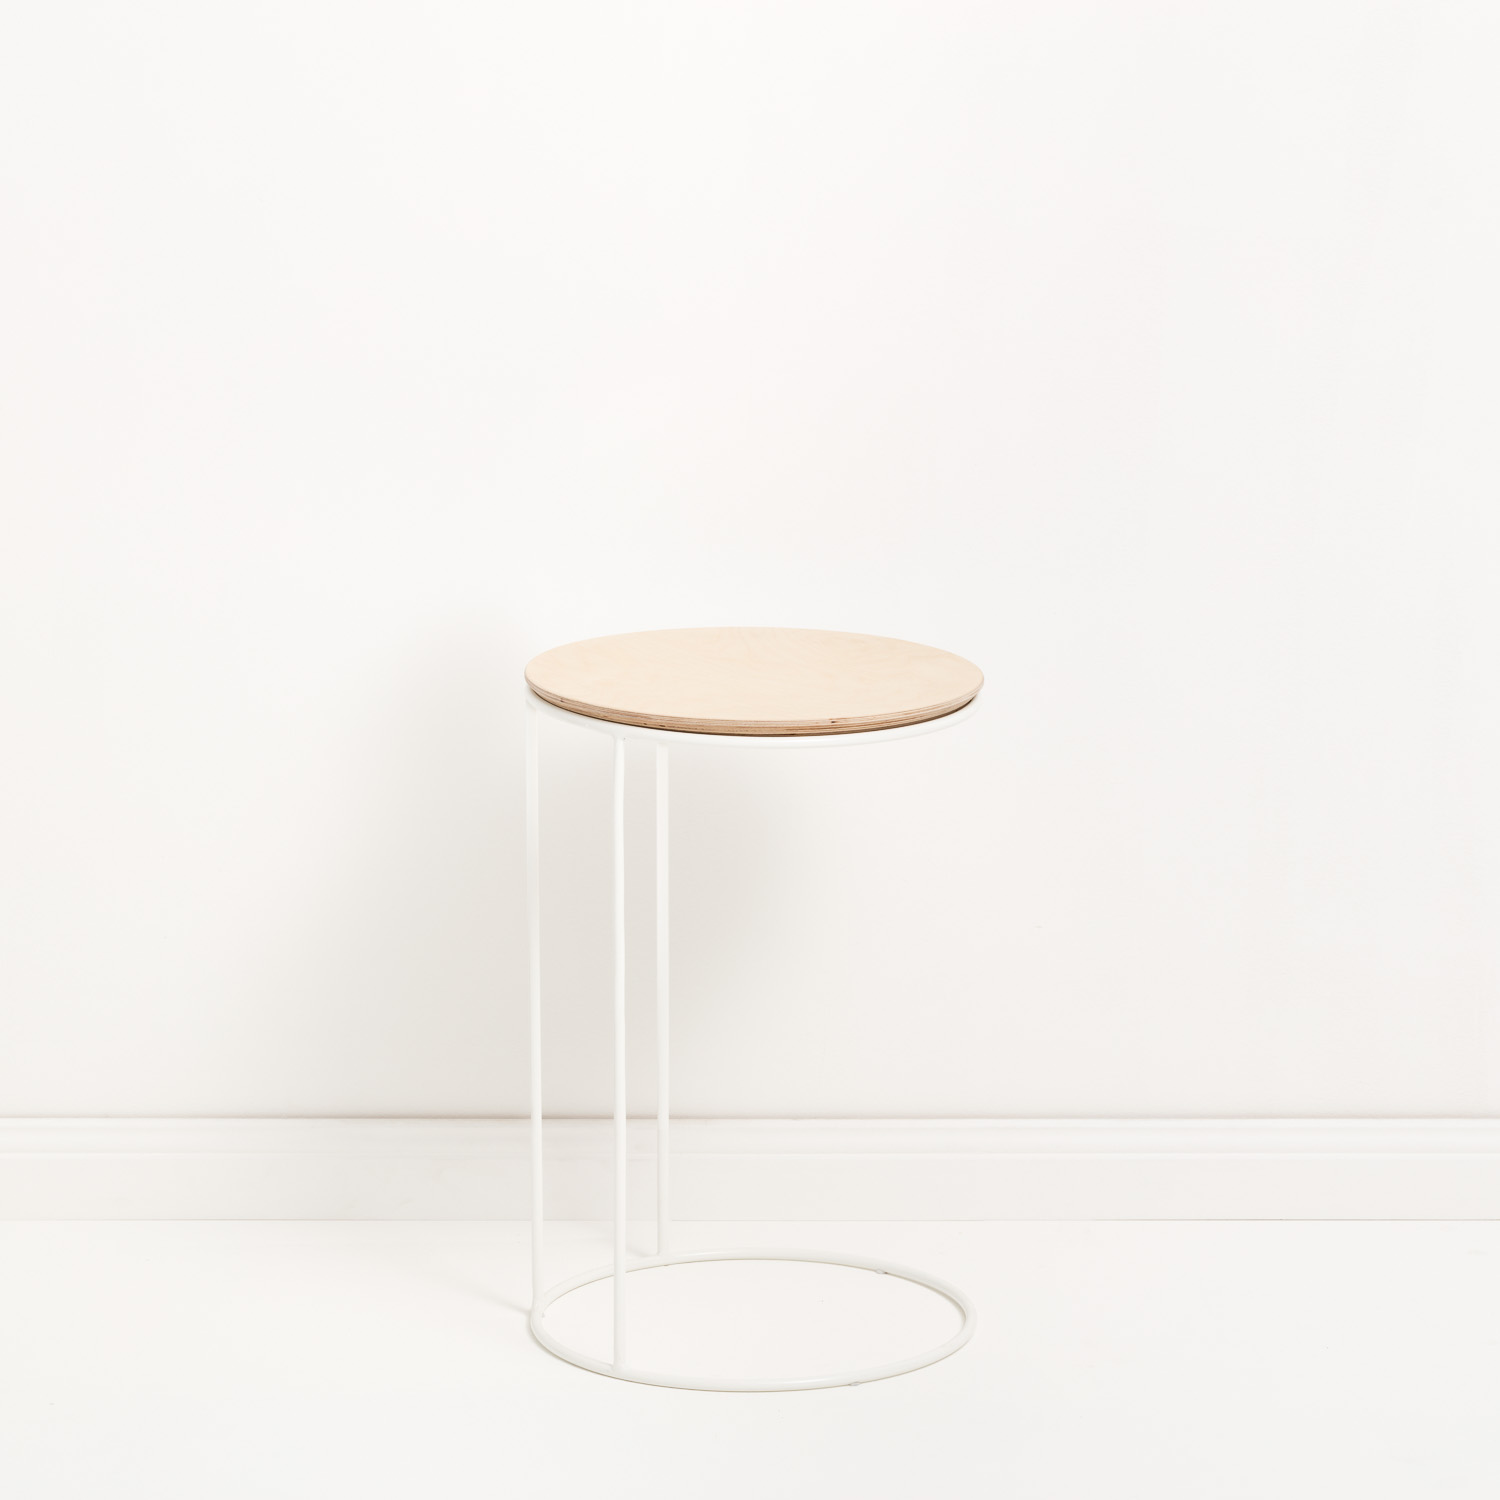 Lilly side table, 40cm (D) x58cm (H), can also be stacked